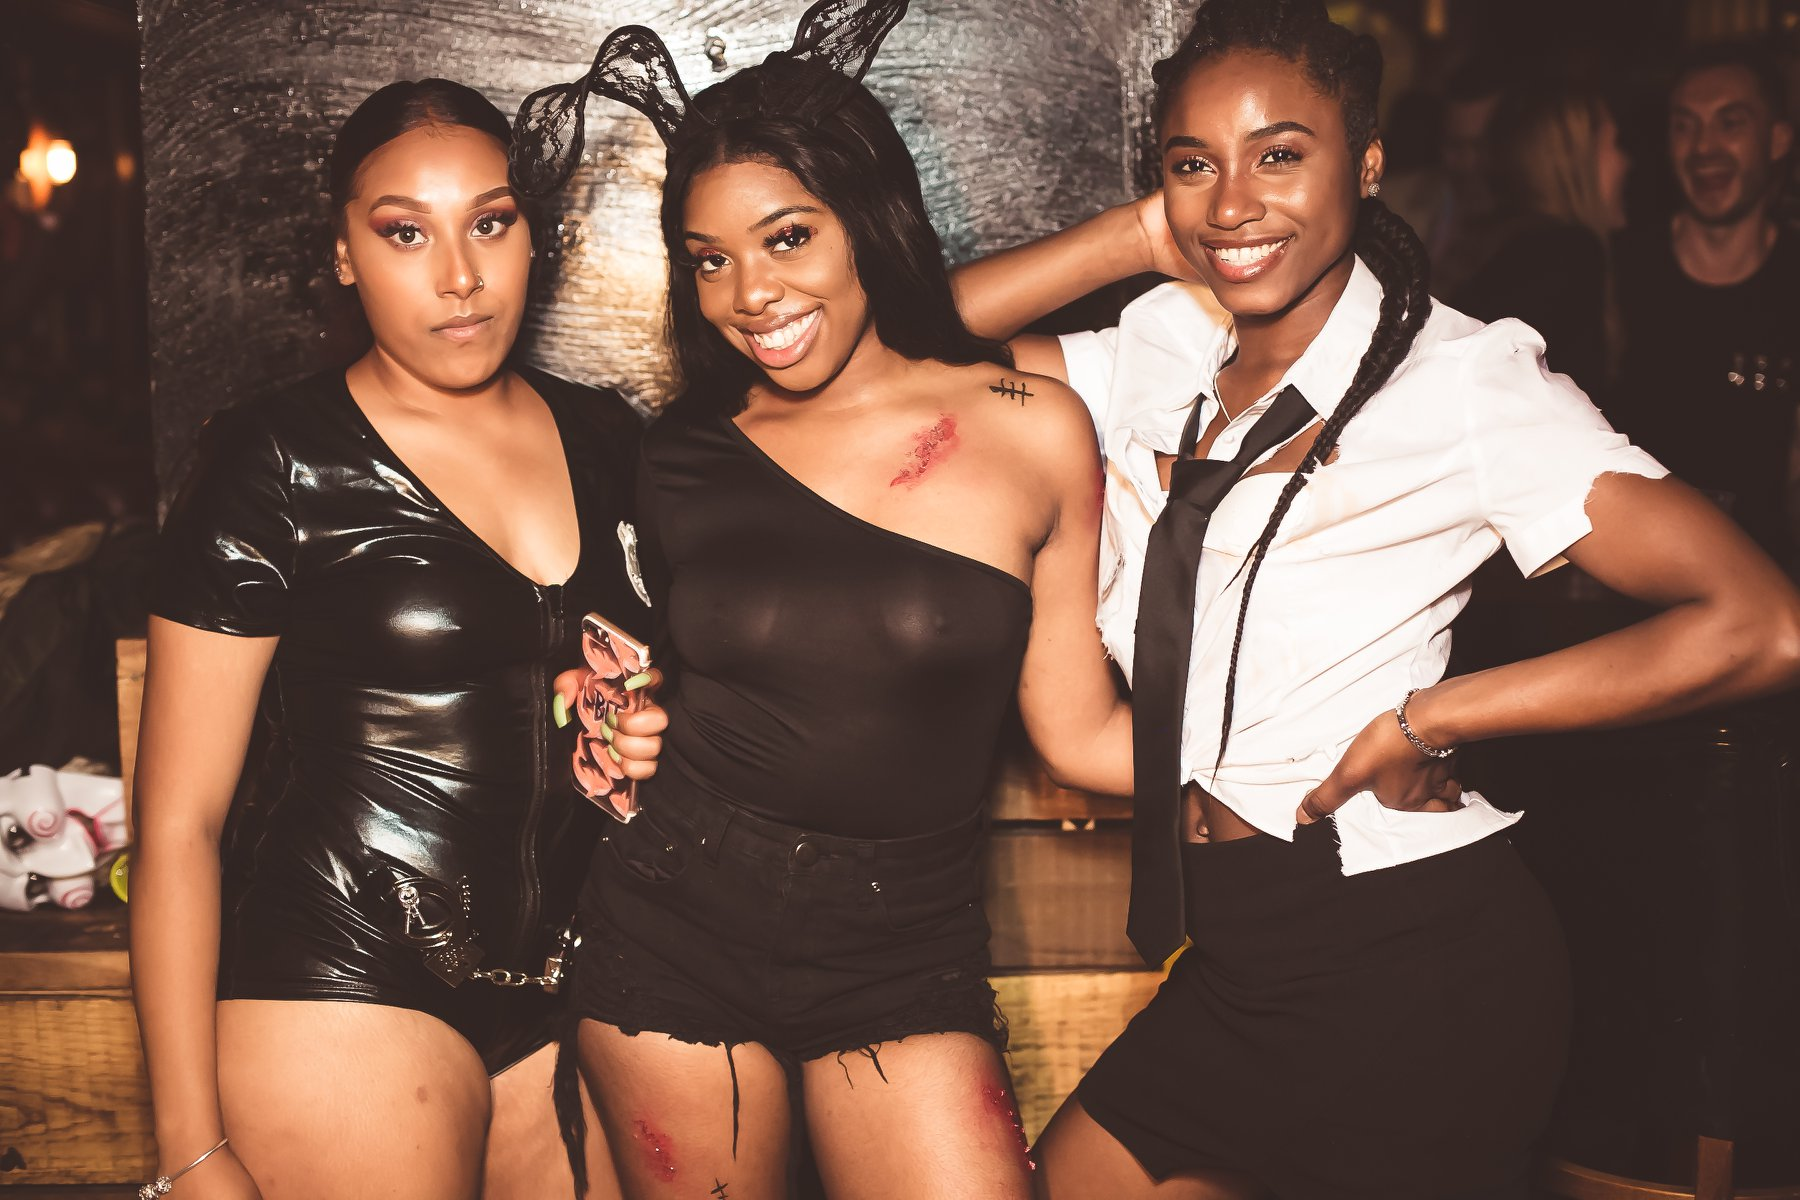 Strictly VIP - London's Biggest VIP Halloween Party